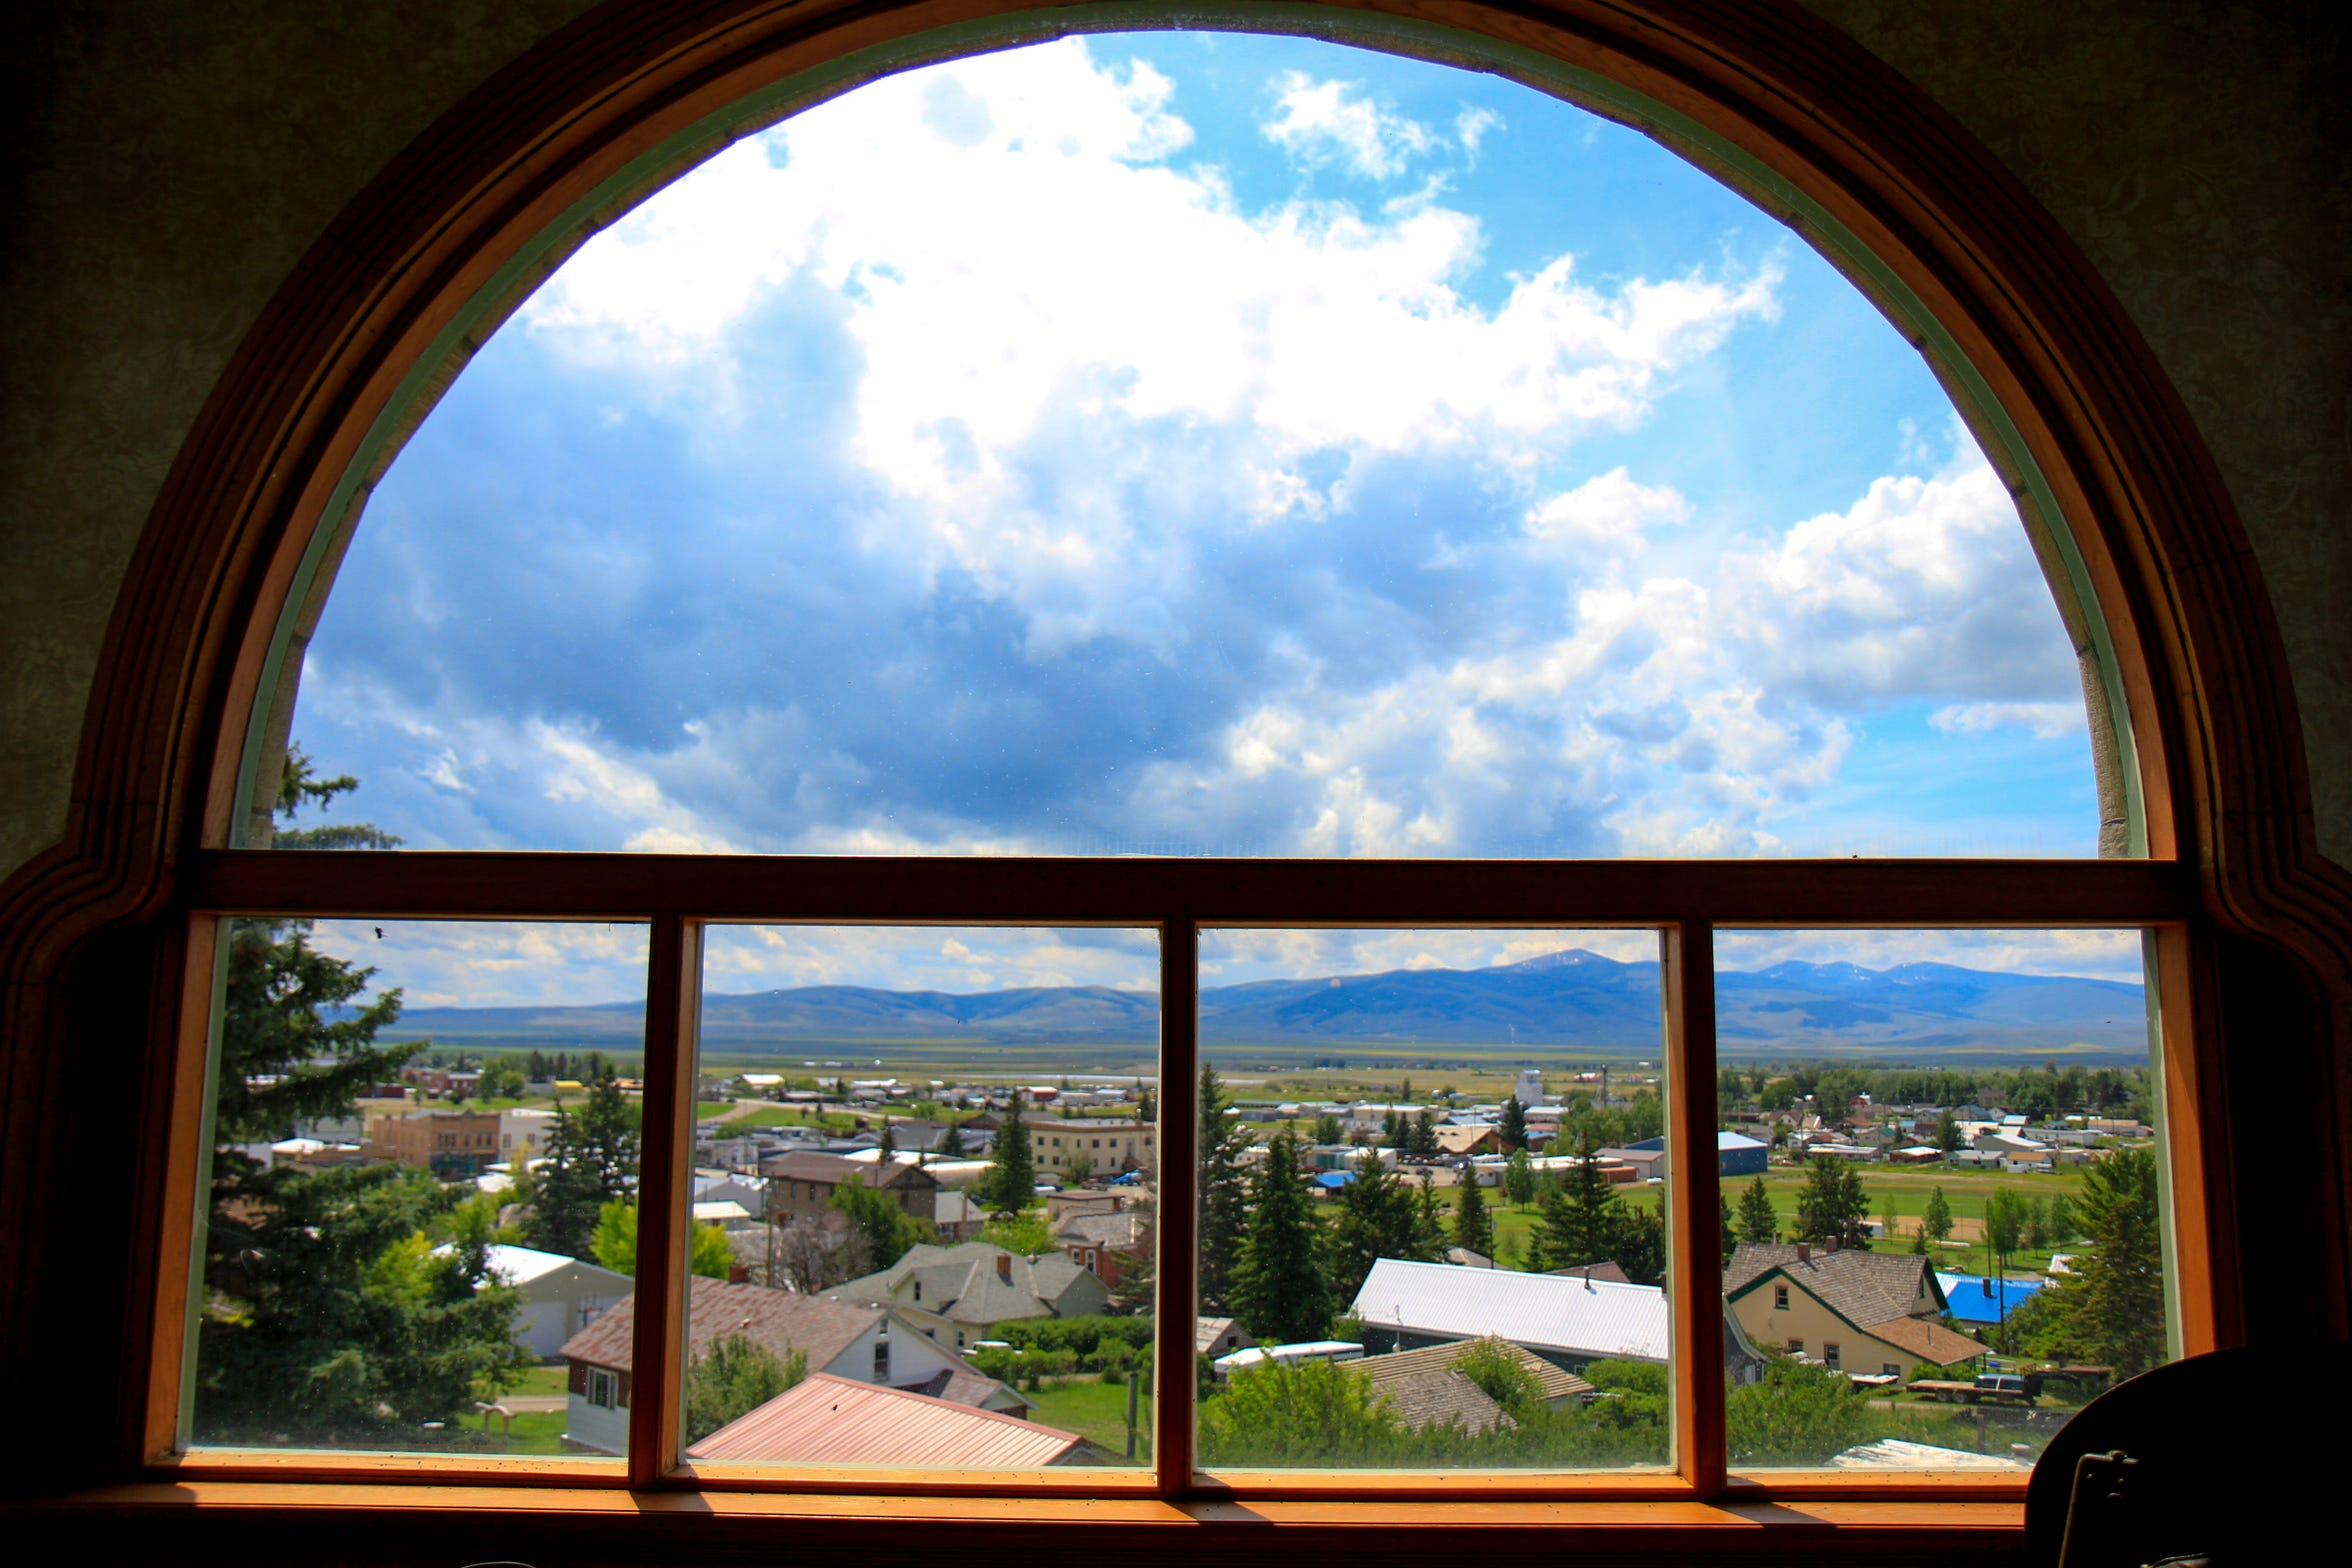 View from the music room window of the Castle Museum in White Sulphur Springs